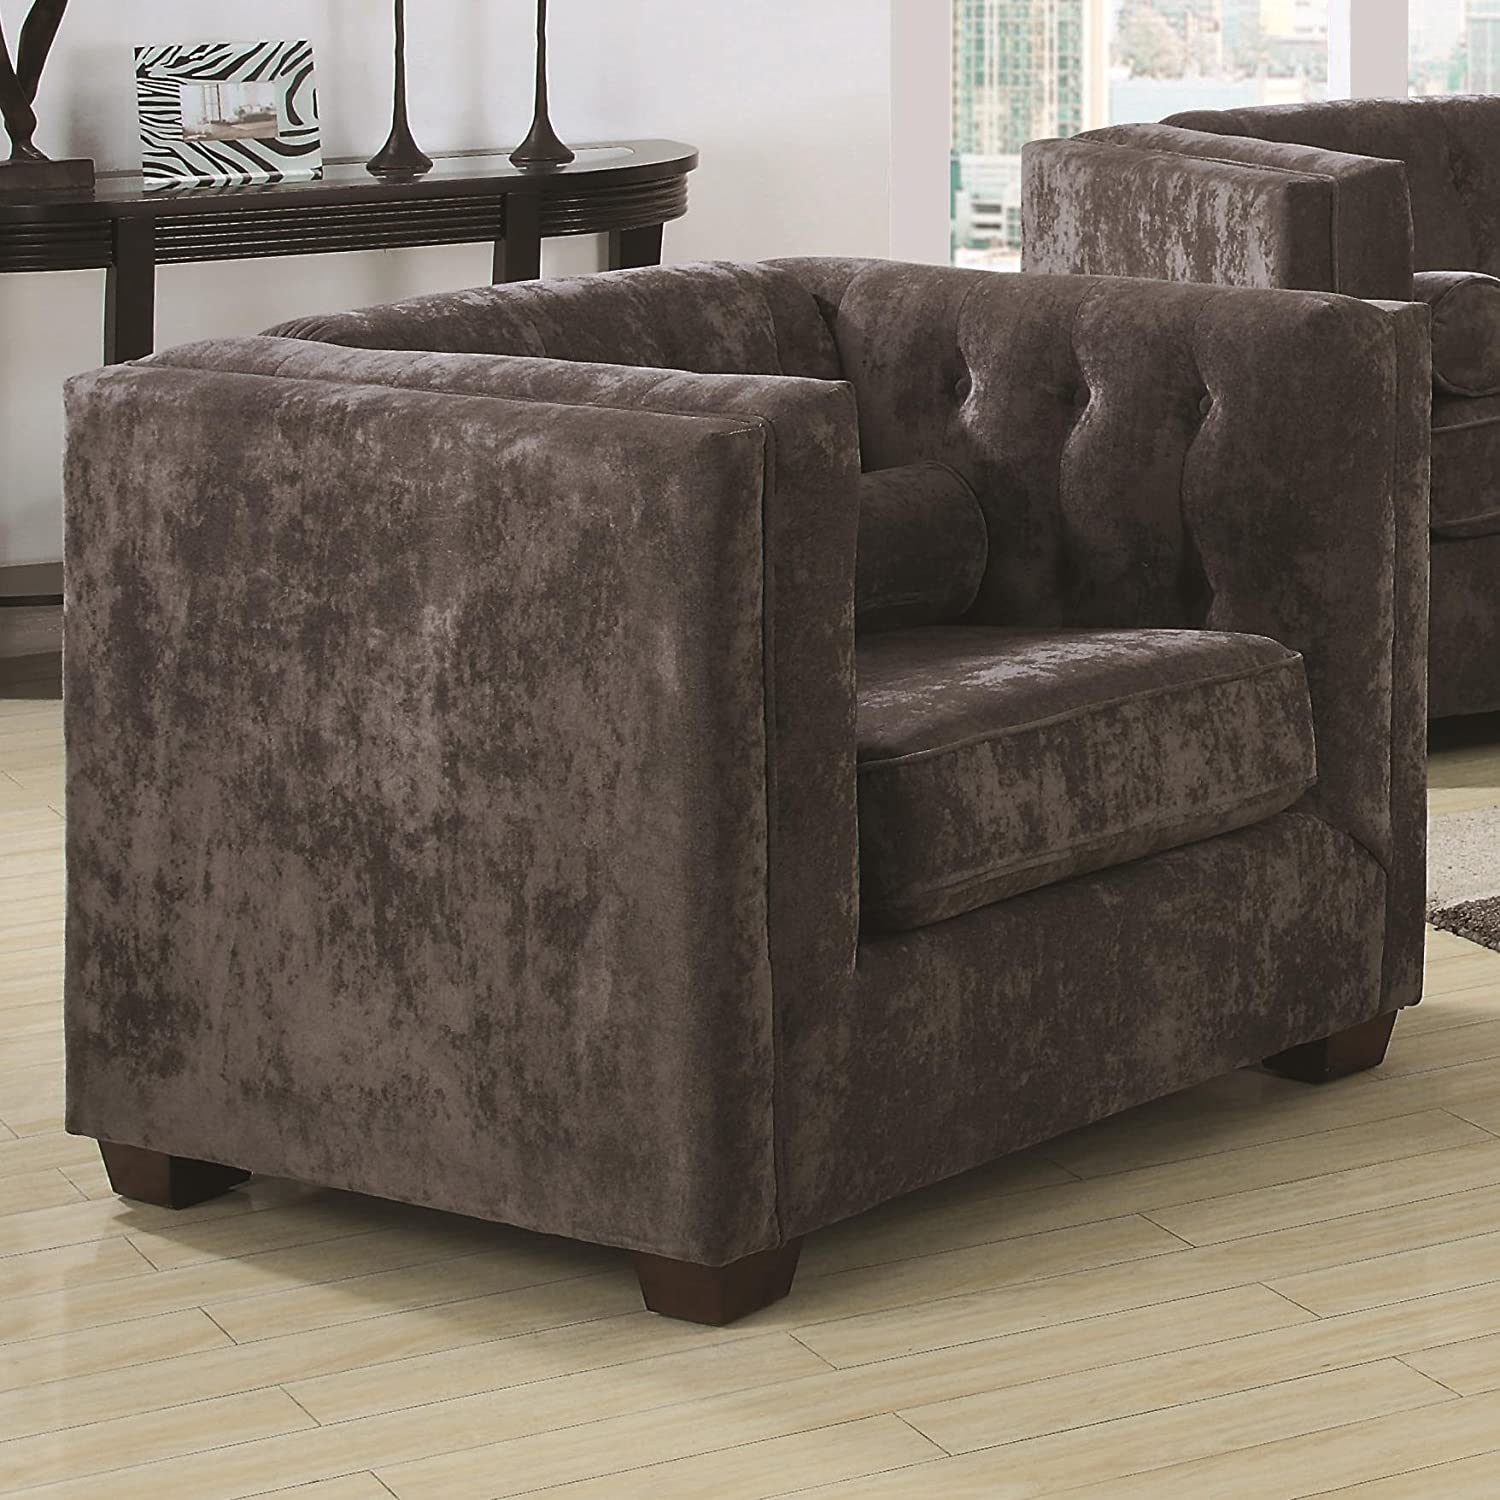 Amazon Coaster Home Furnishings Transitional Chair Charcoal